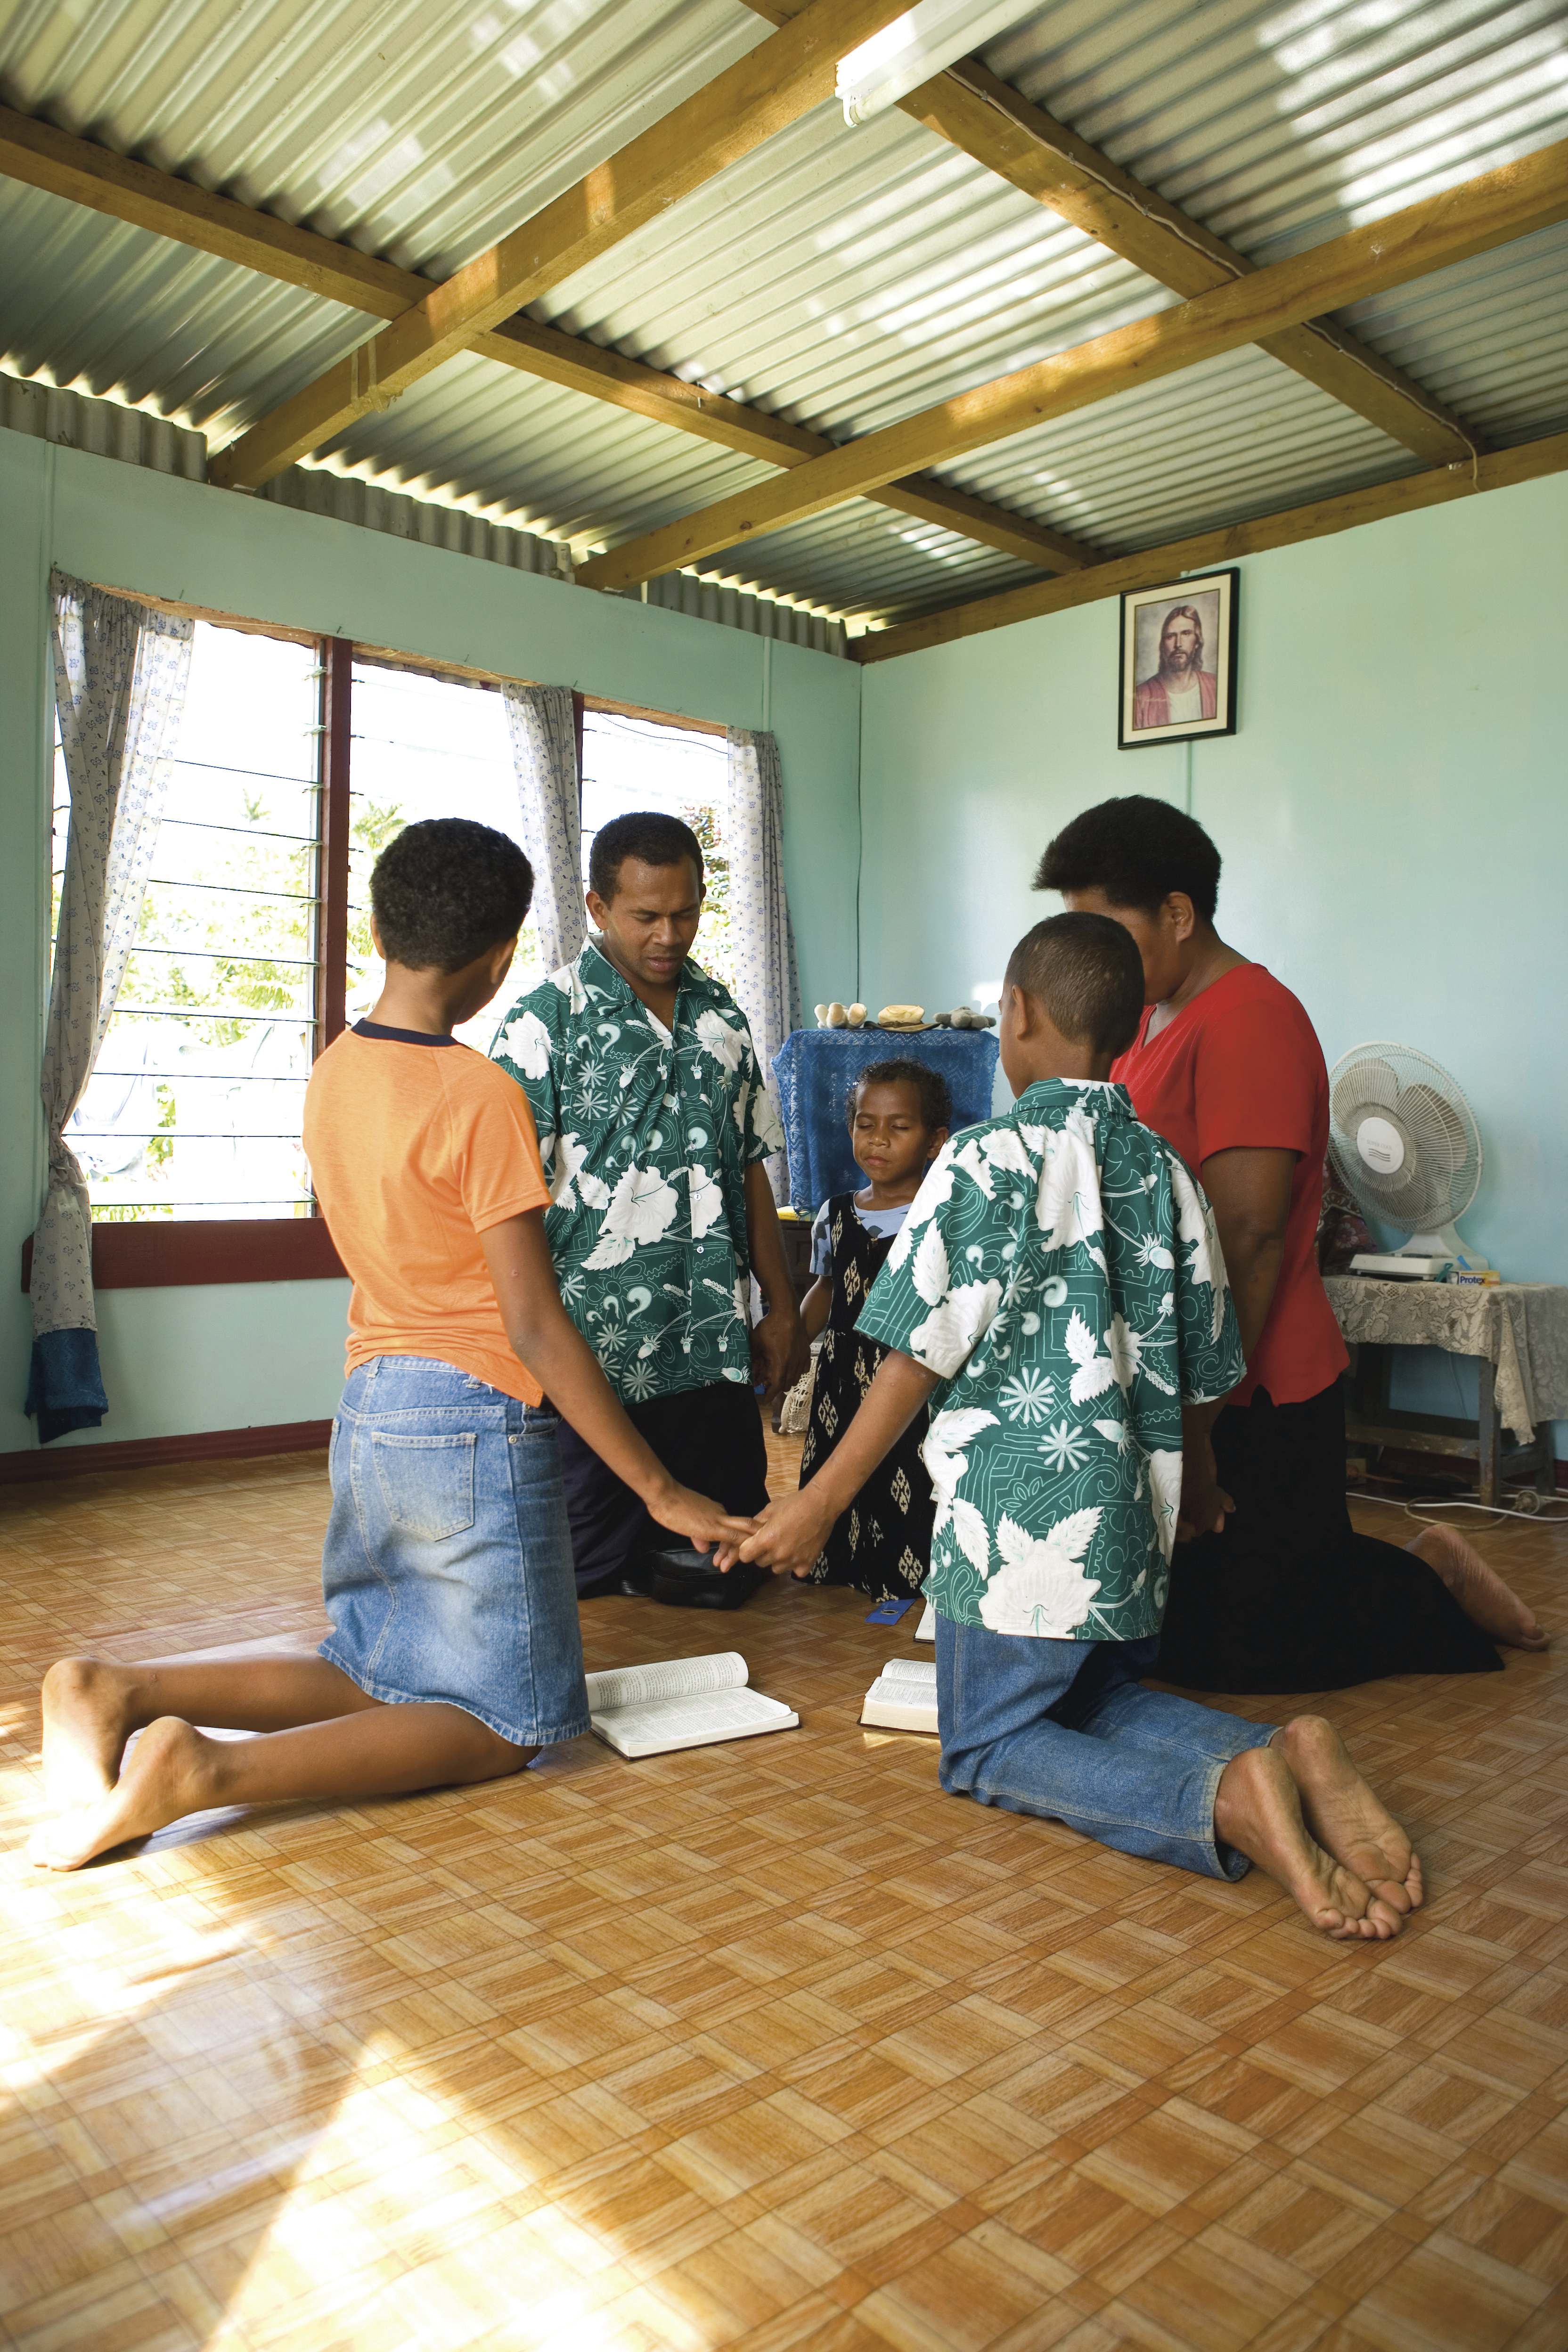 A family in Fiji holding hands and praying together.